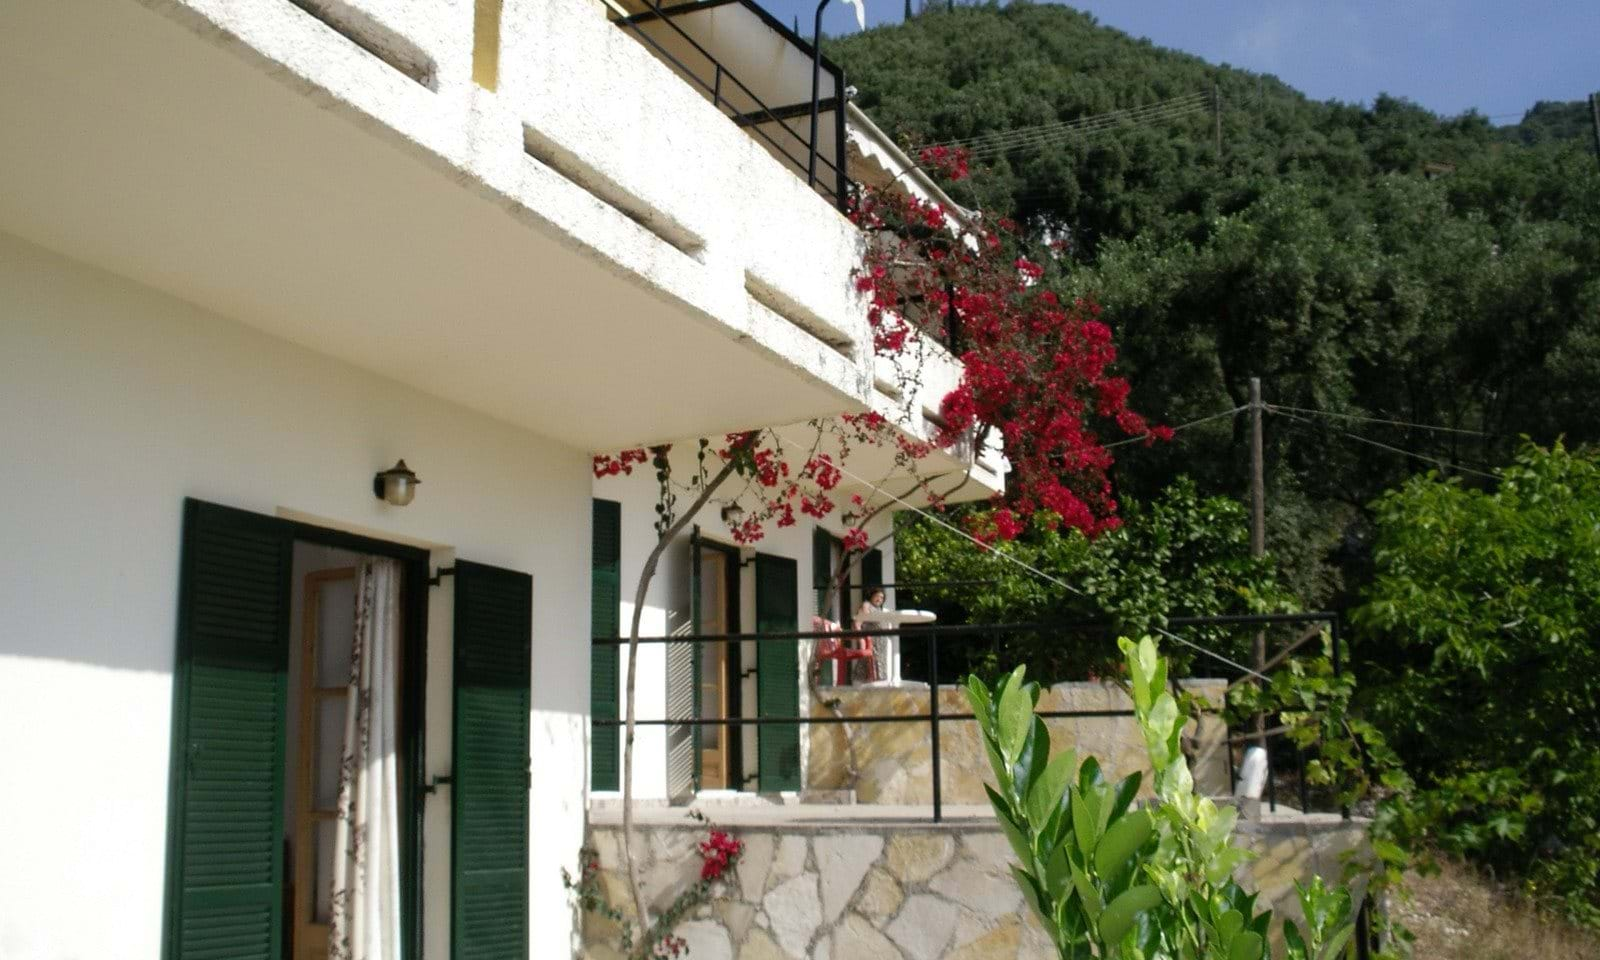 Commercial property in Corfu